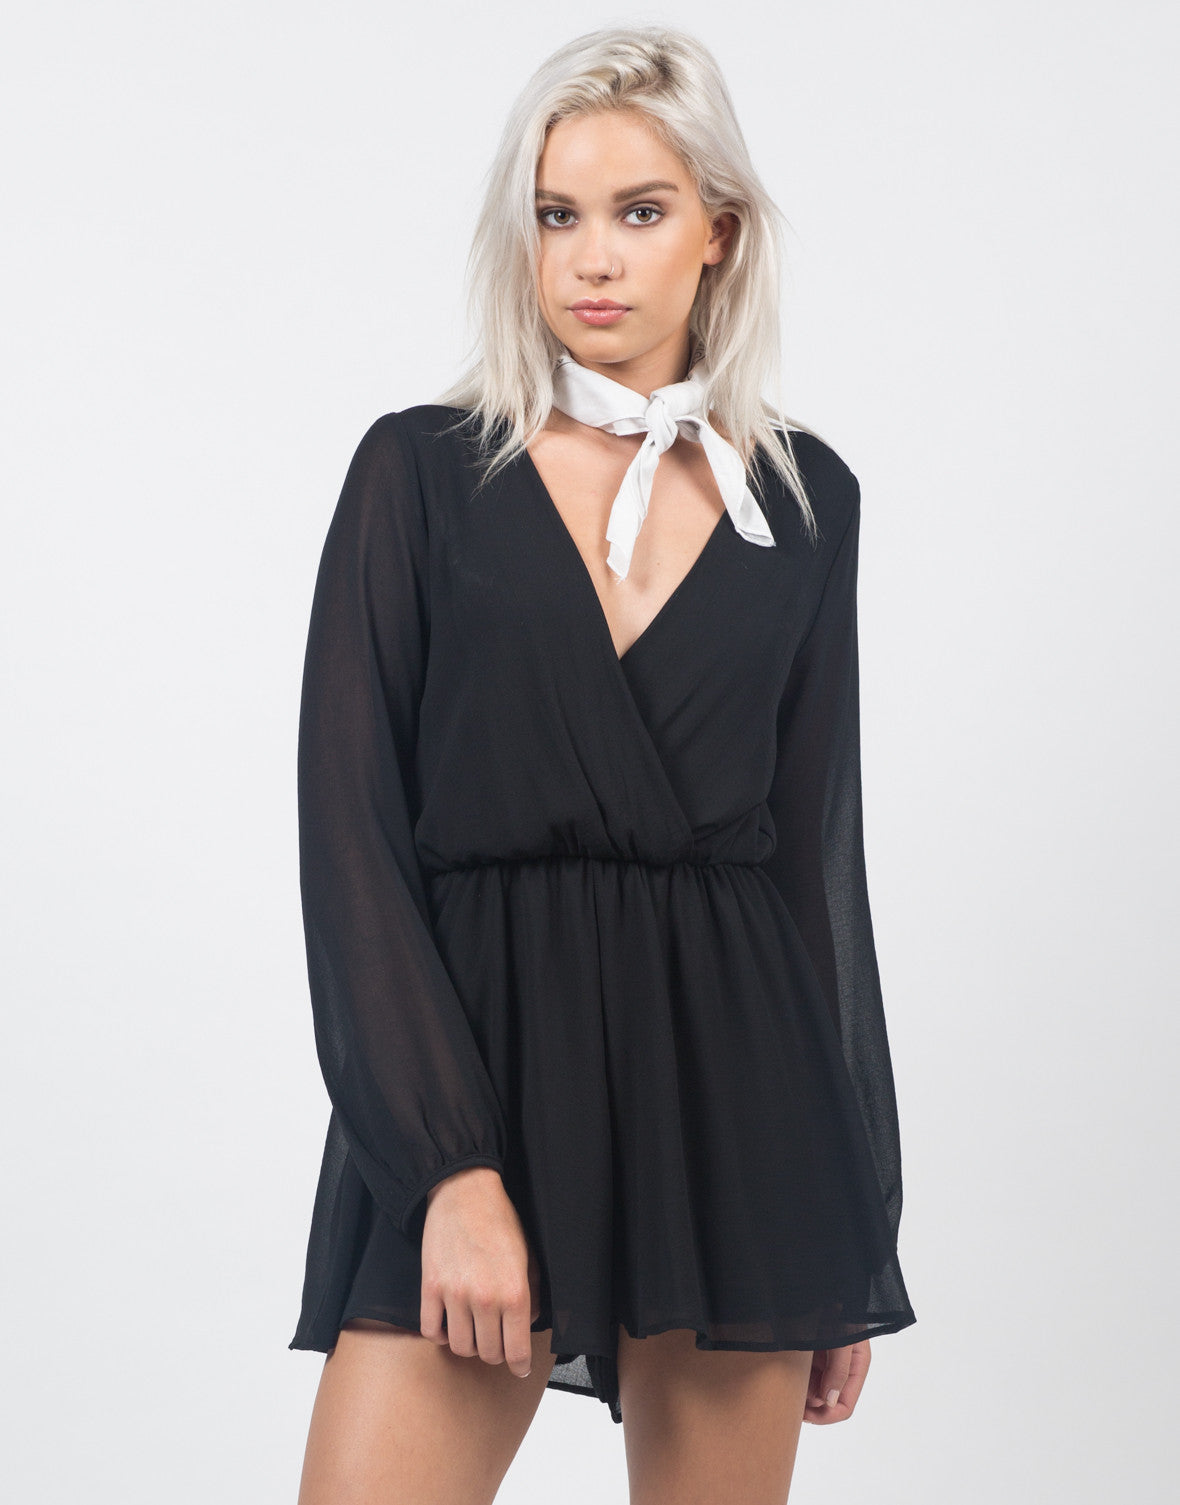 Front View of Chiffon Romper